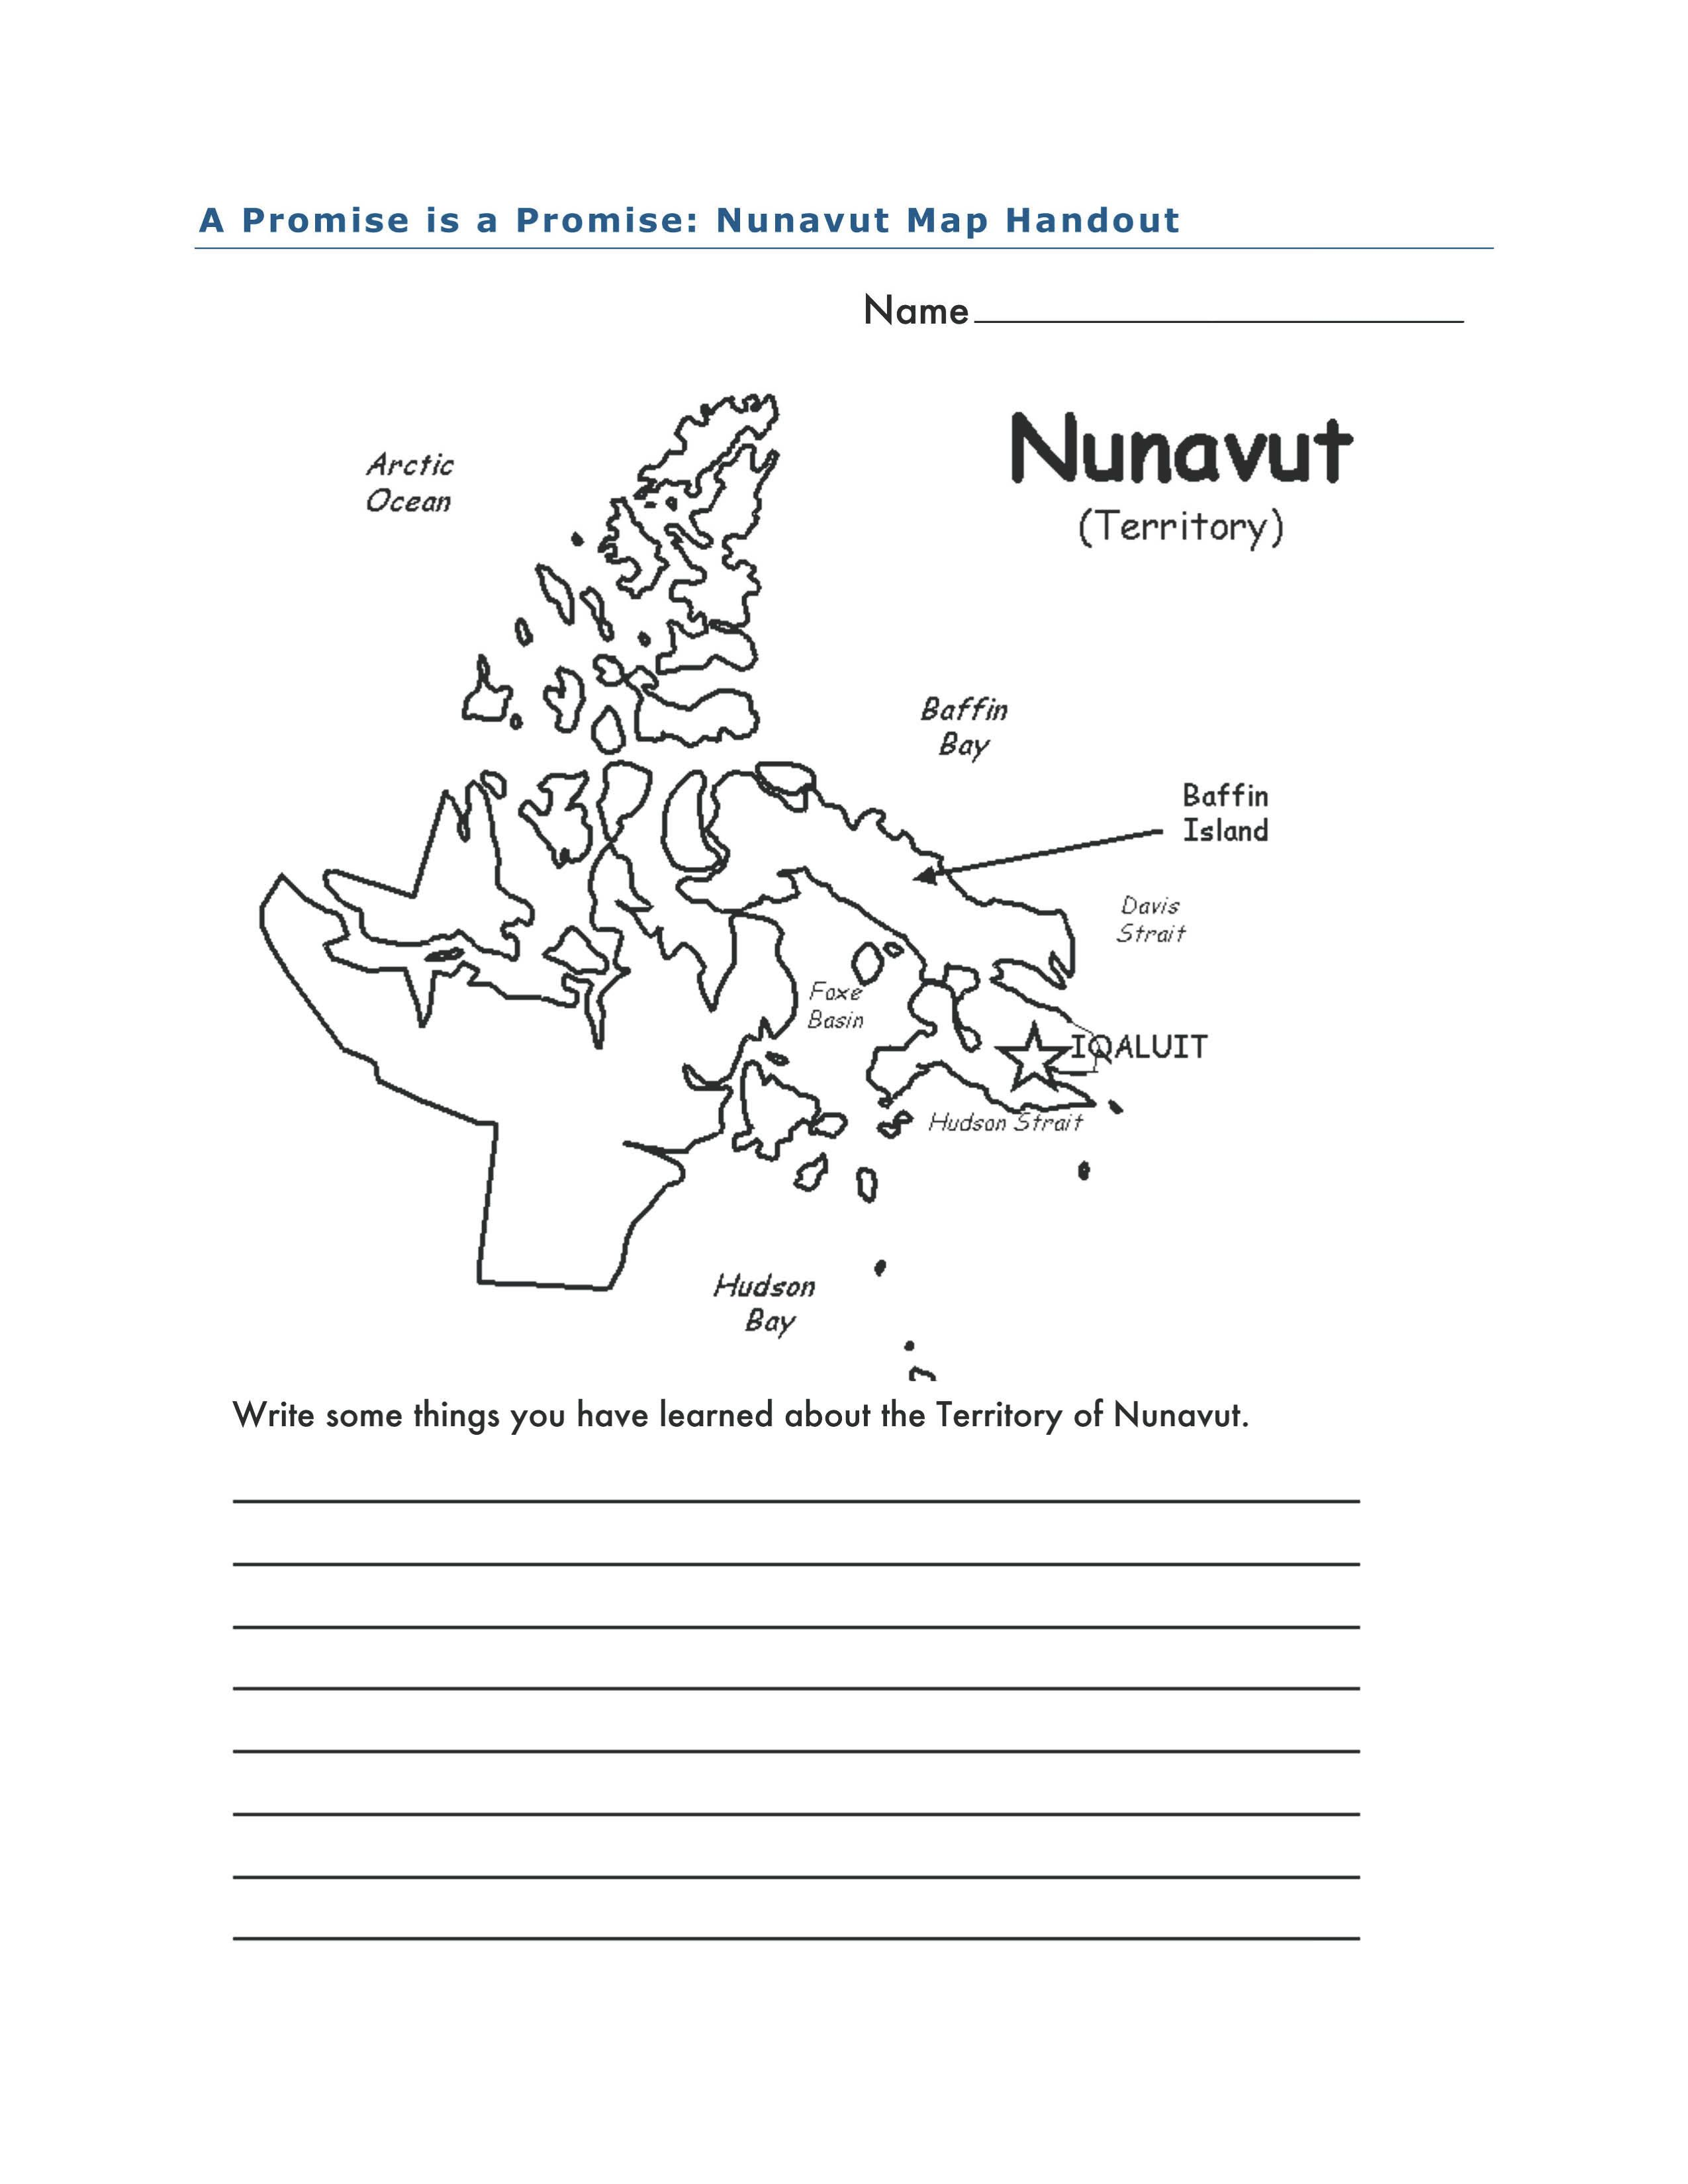 Nunavut Map Activity For A Promise Is A Promise By Robert Munsch And Michael Kusugak Teach